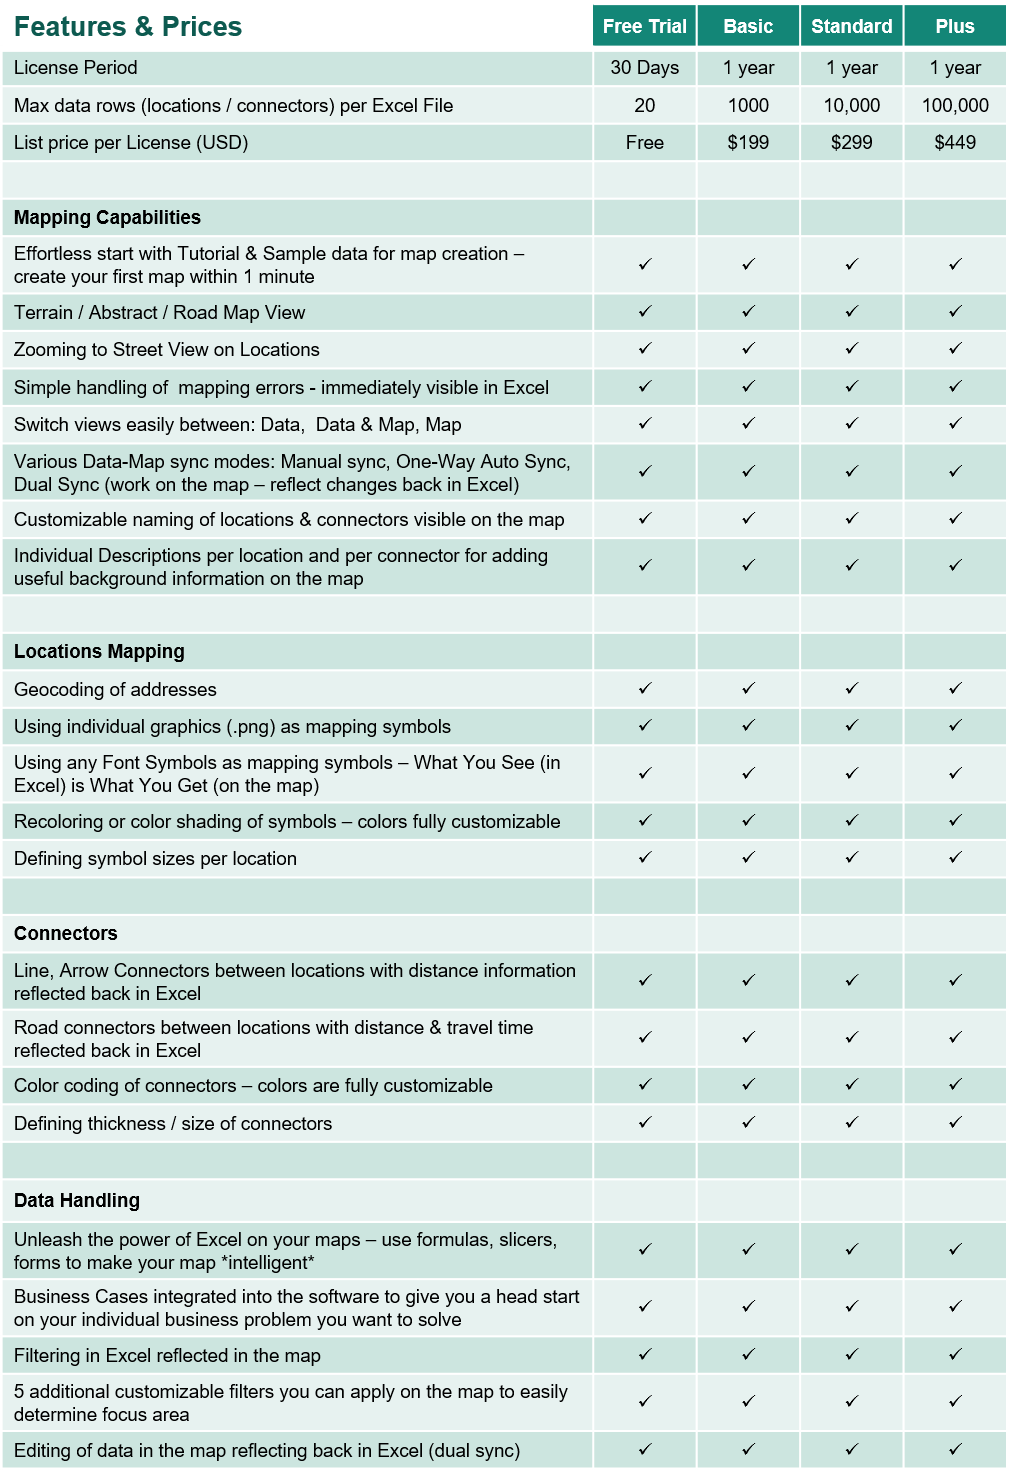 Features&Prices